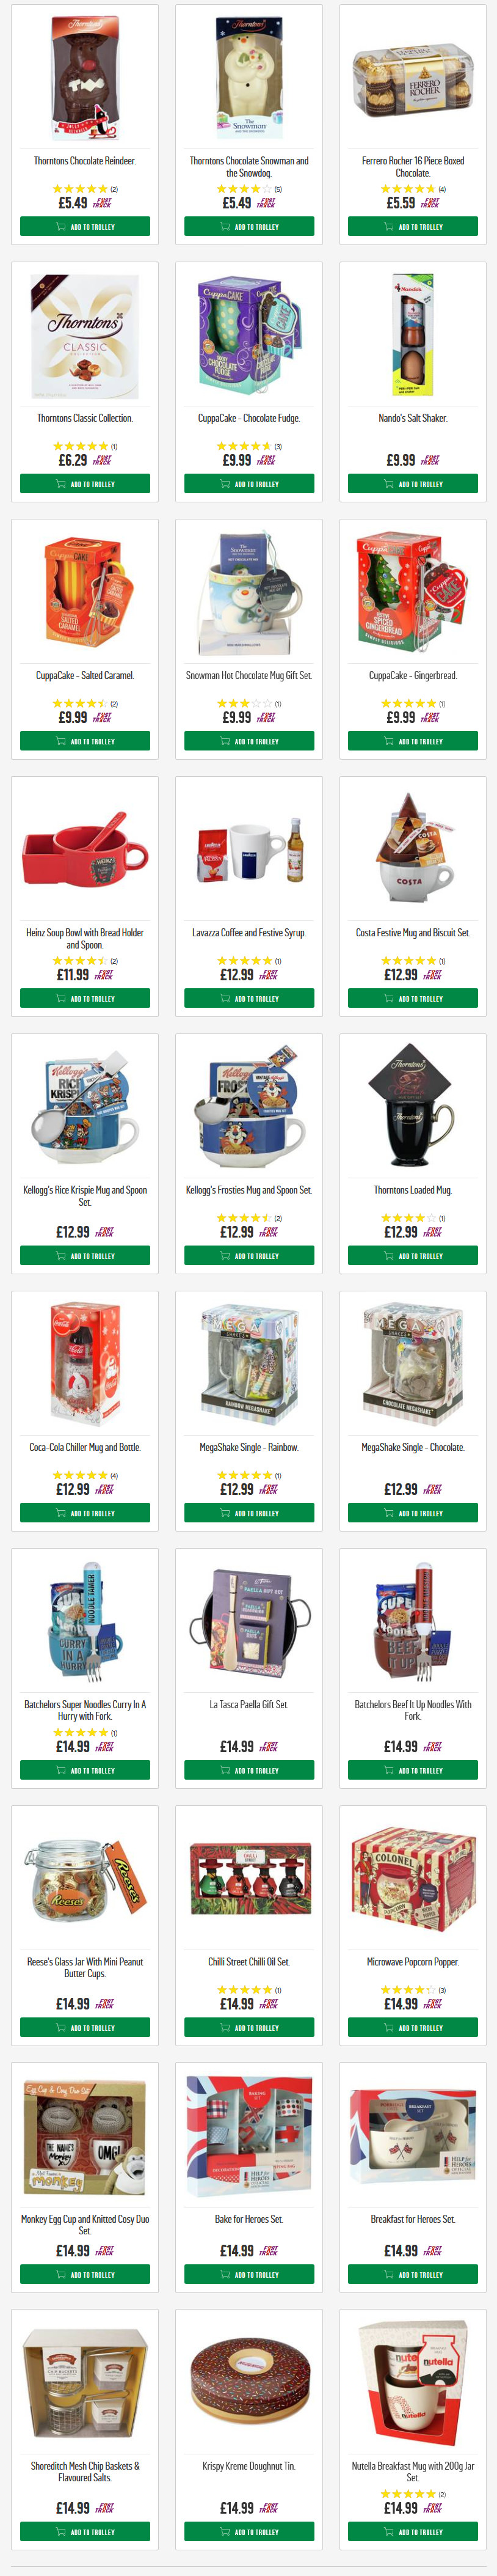 Hot Chocolate Gift Sets Thorntons